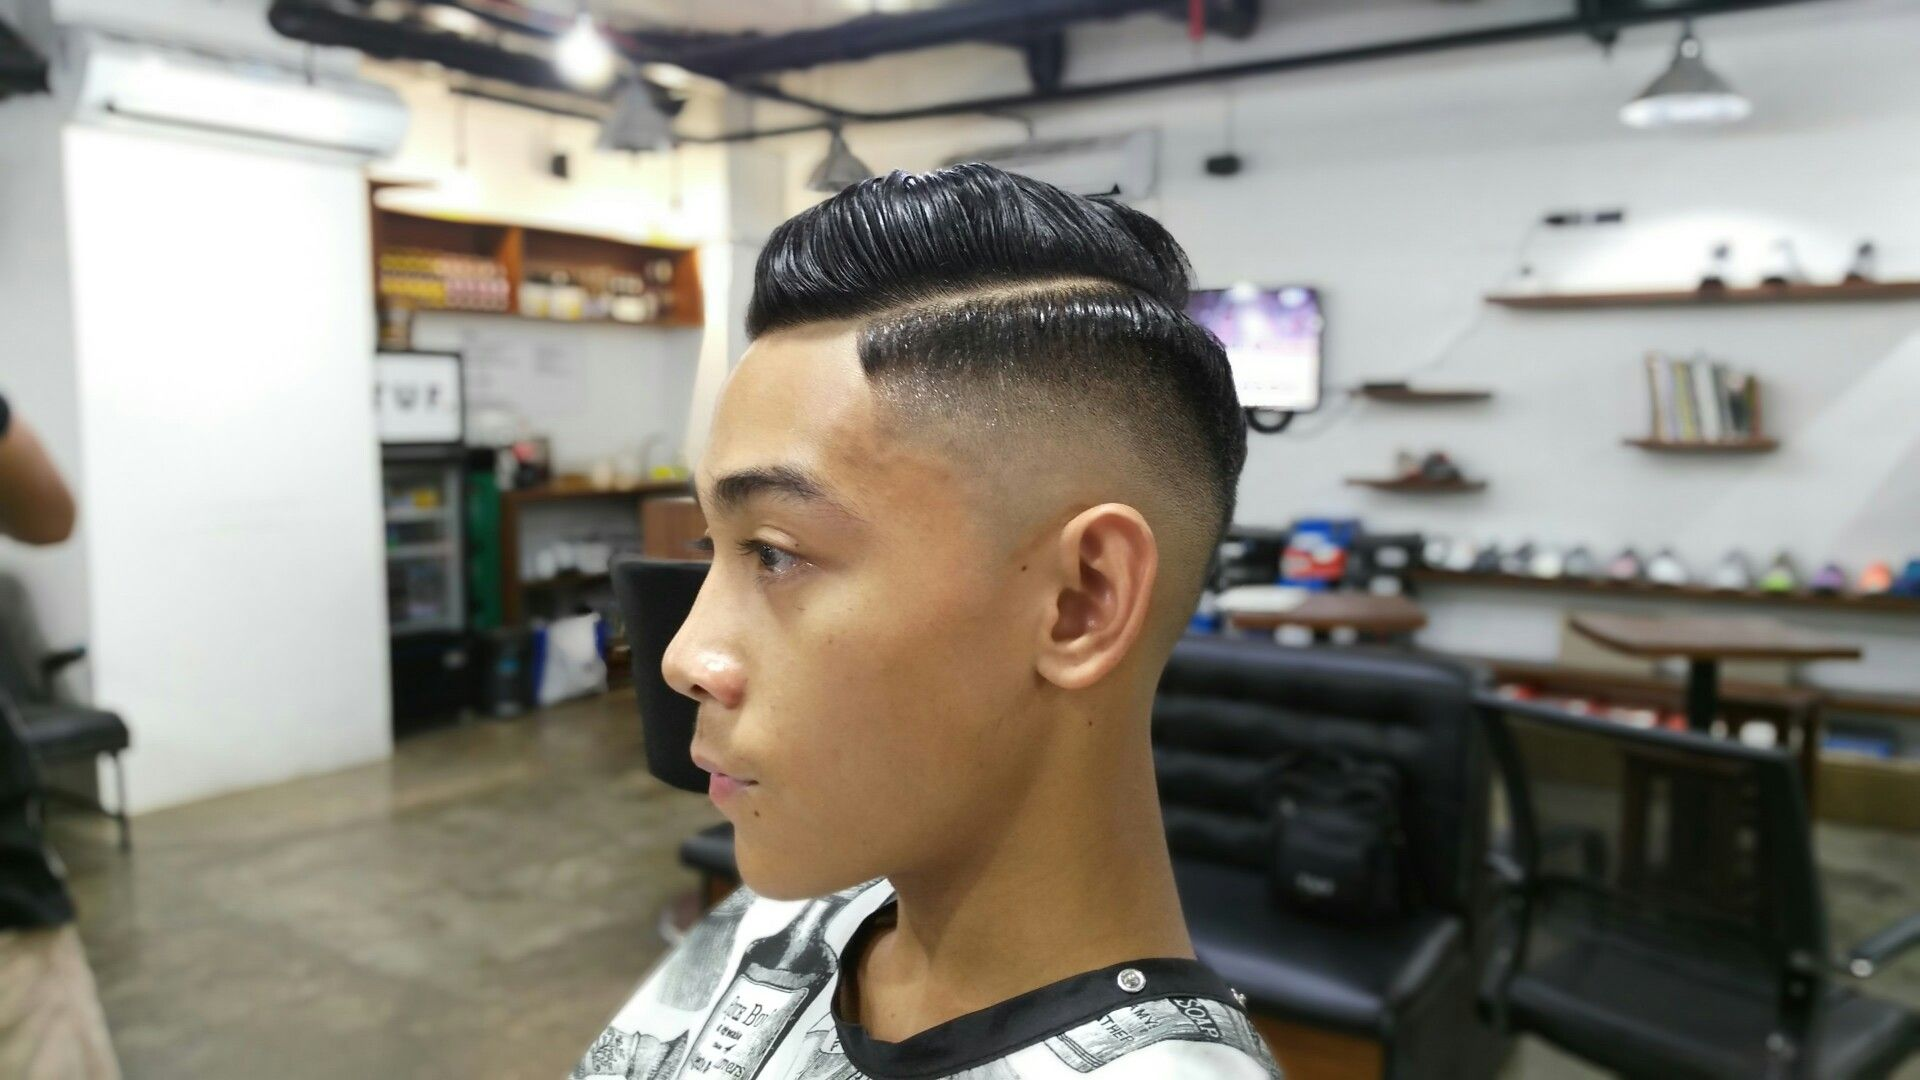 High n Tight! Crisp and Clean ⚡  #barbergrind #barberhustle #barberforlife #barbershopconnect #barber #barbers #barbering #barberlife #pomp #pompadour #menshairstyle #menshair #andis #tillidiebarbers #pma #pmaallday #cebu #032 #philippines #barberlove #gypsybarber #keepittraditional #sidepart #internationalbarbers #worldbarbershops #showcasebarbers #BARBERHUB #BATW #NewWorldBarbers #idgt